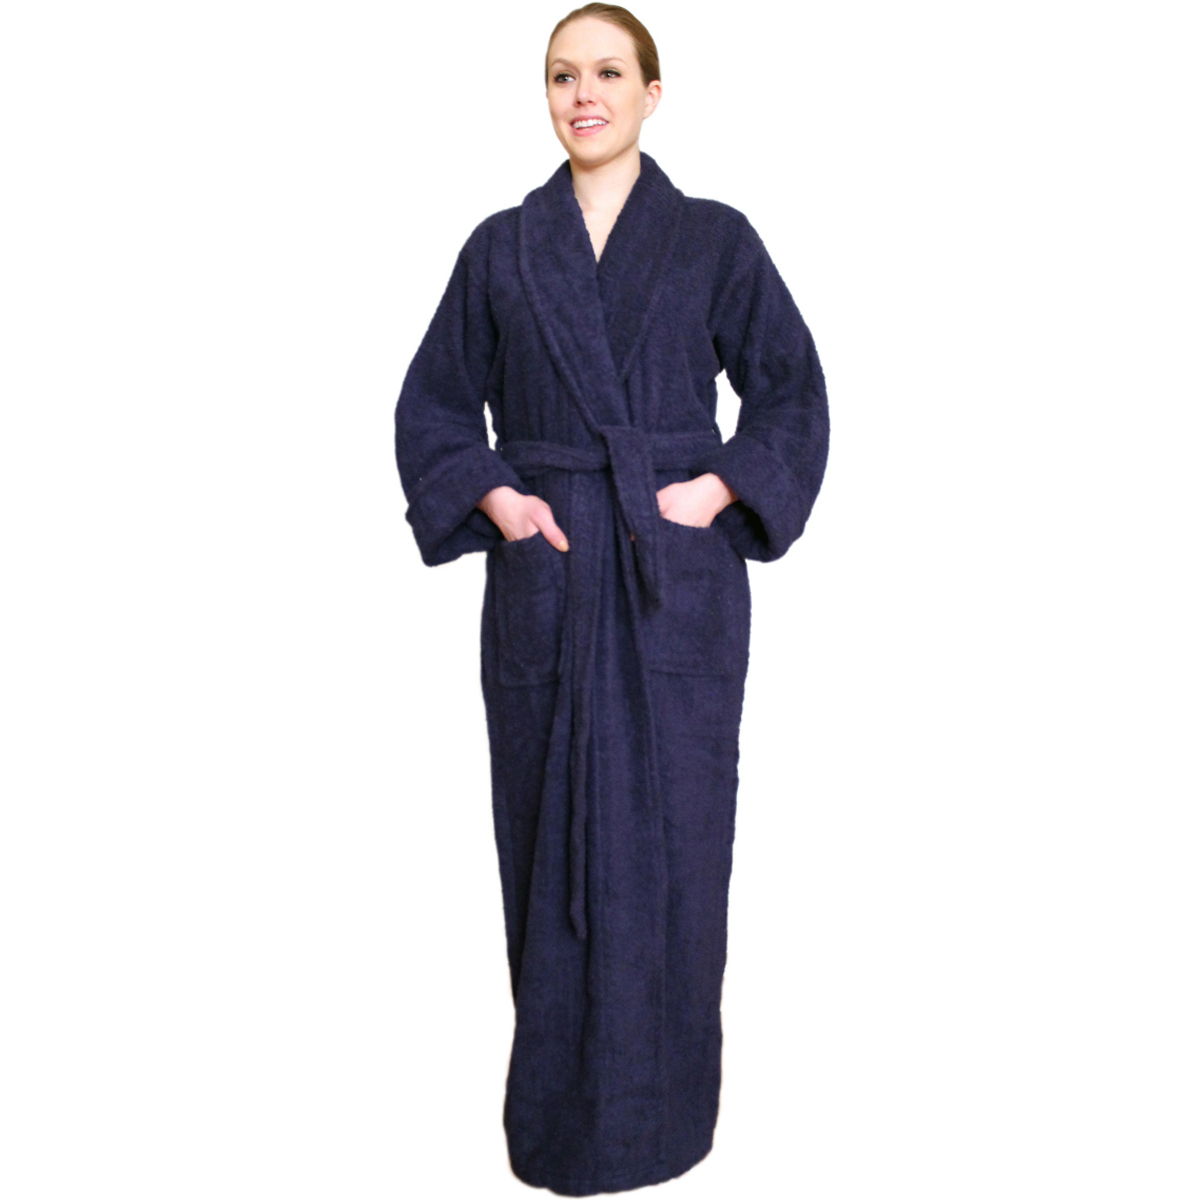 Full Length Terry Cloth Robe Long Sleeves  100% cotton Colors: SkyBlue Navy White. Sizes:  S/M L/XL 2X/3X     Made from very fine yarn in medium weight terry cloth. The hooded robe is roomy with long sleeves and